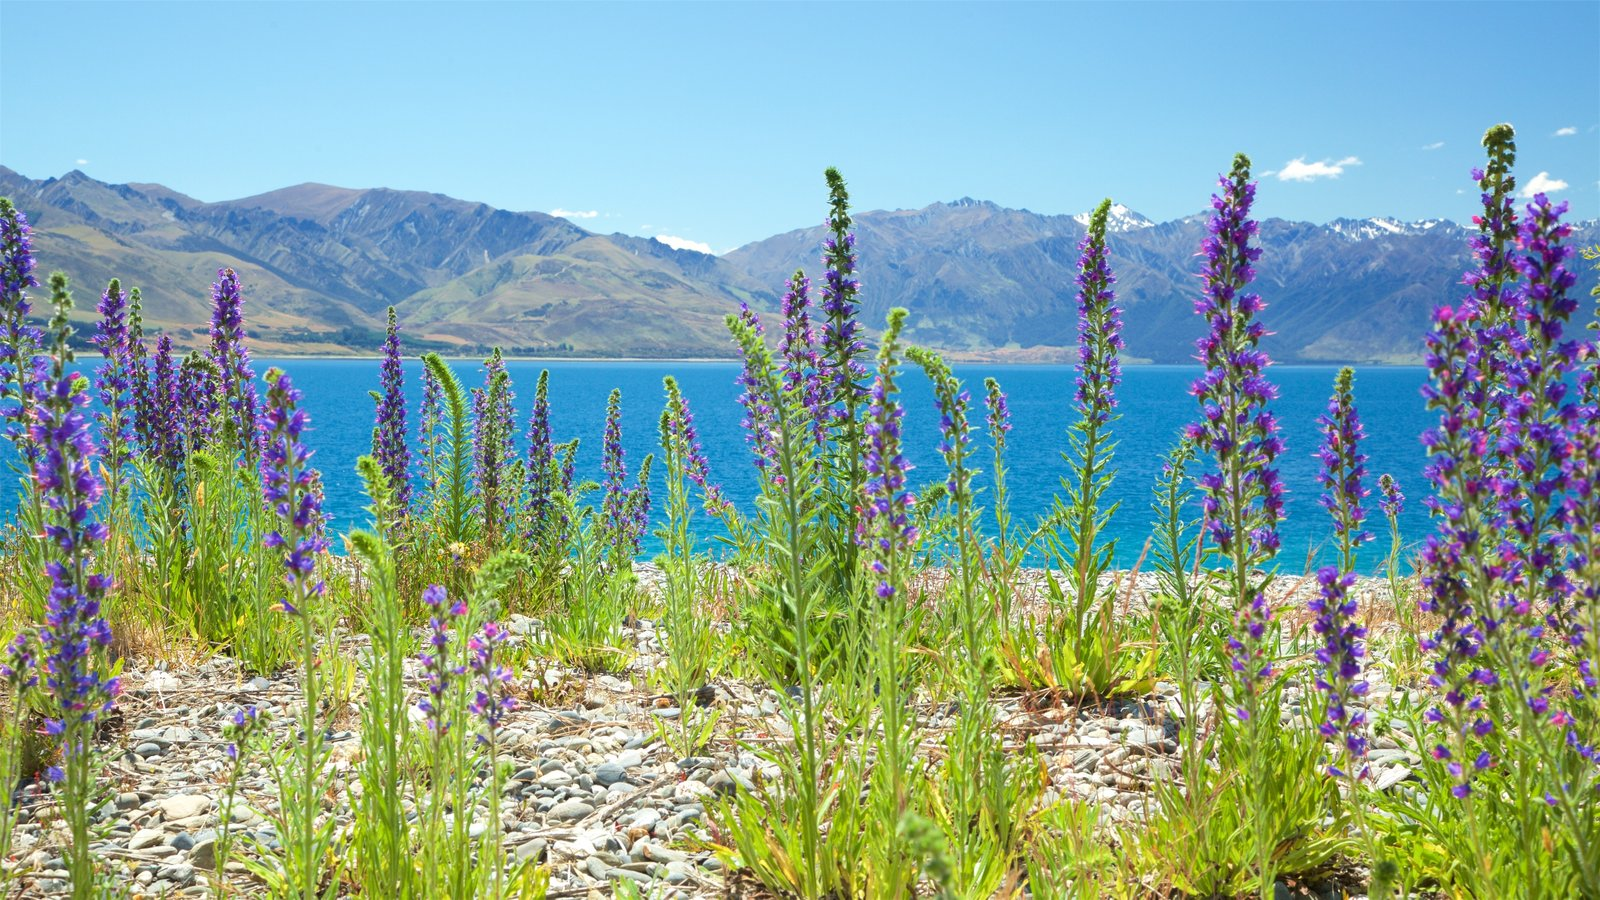 Lake Hawea featuring wildflowers, a lake or waterhole and mountains